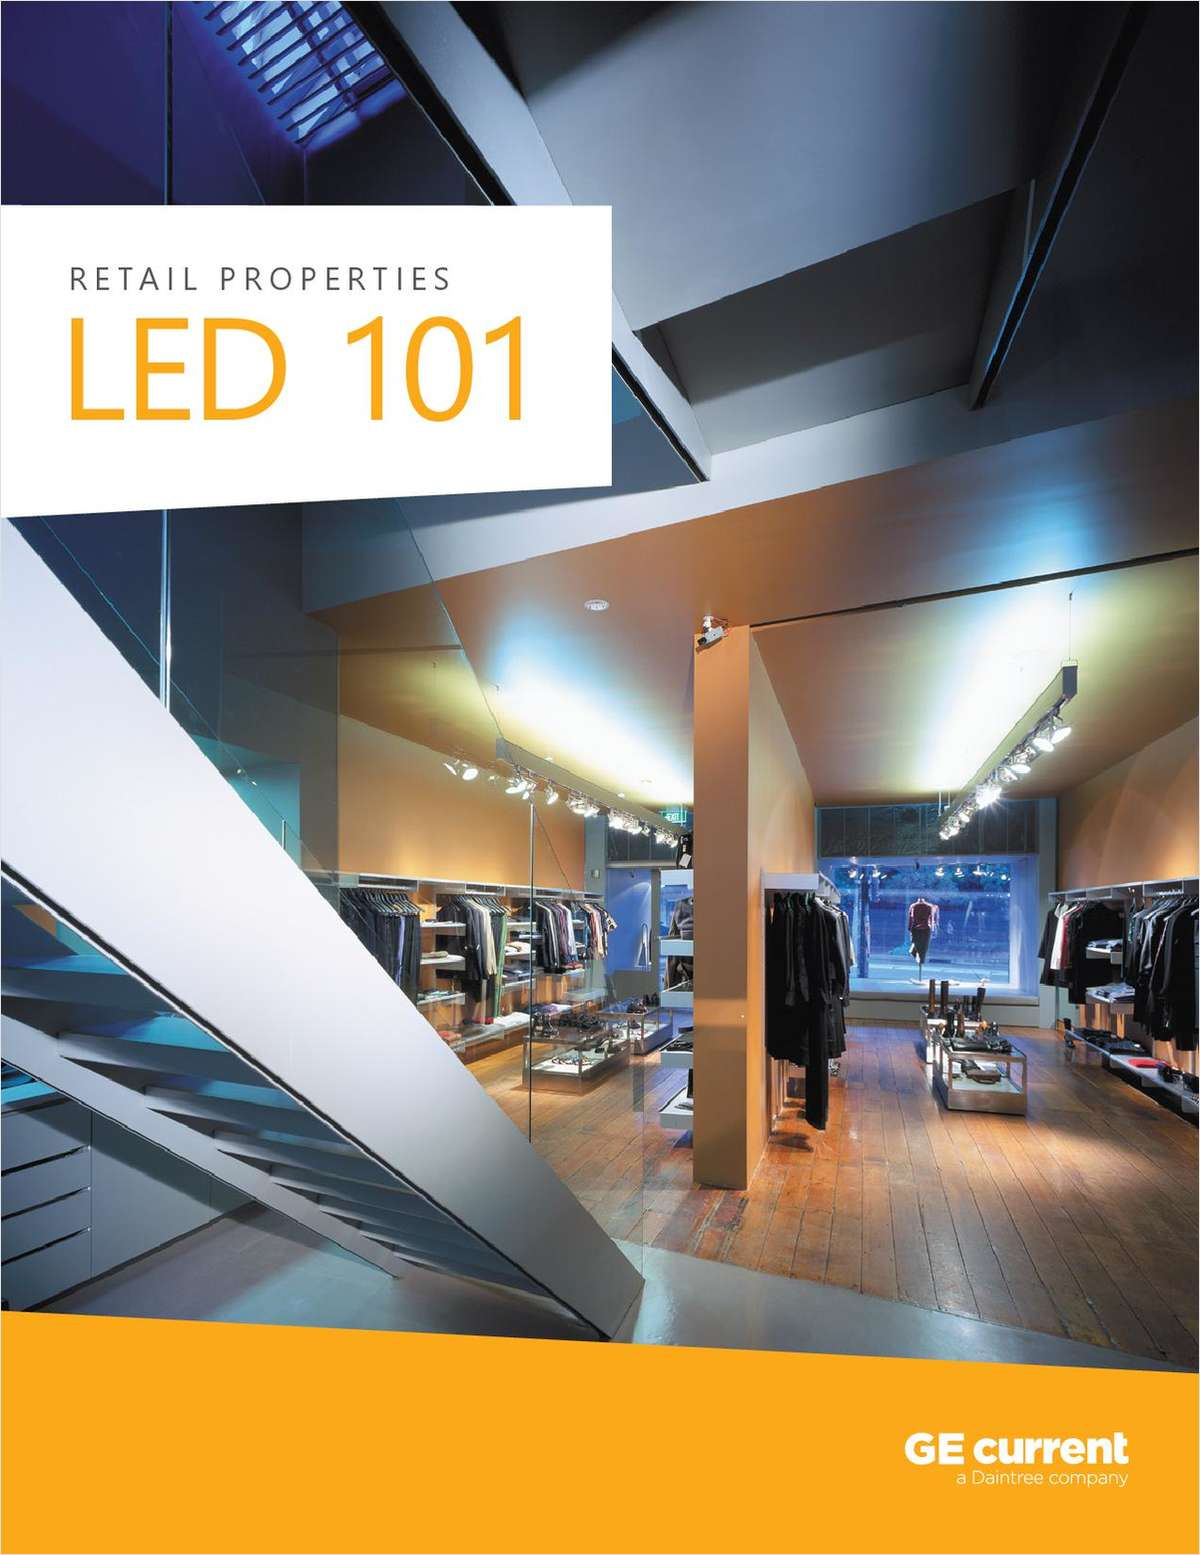 LED 101 for Retail Properties